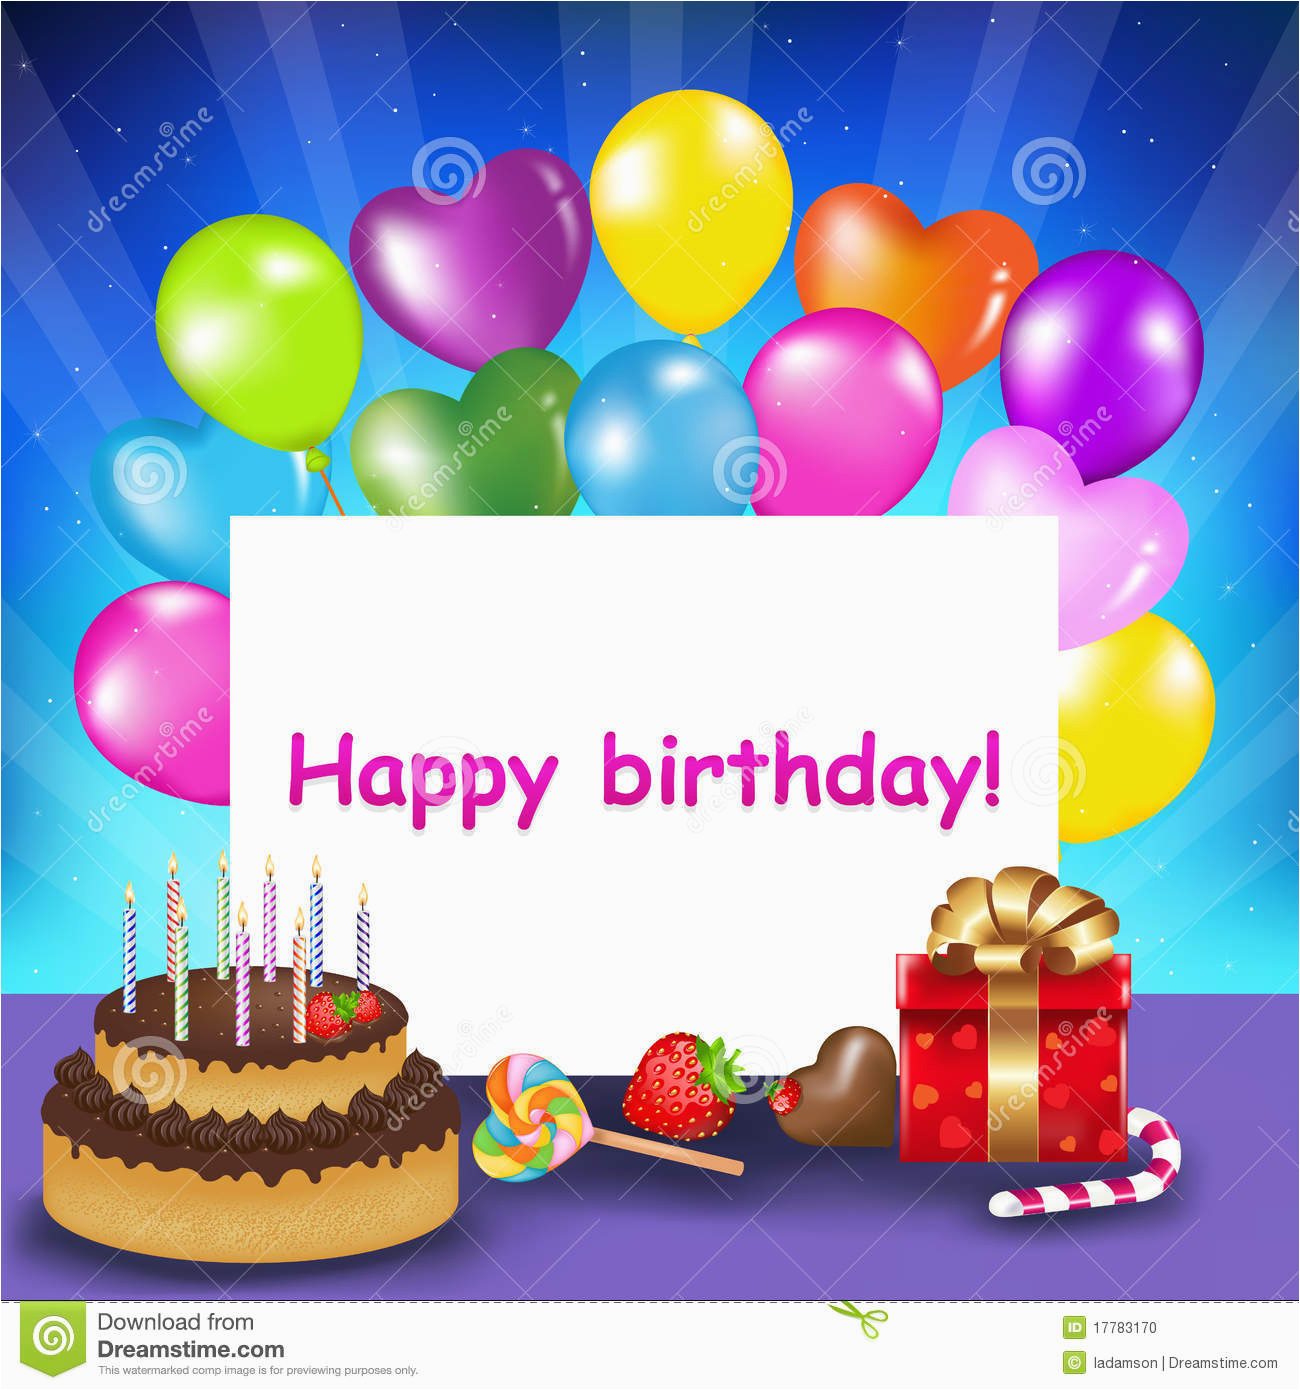 Create Birthday Card With Photo Online Free Happy Cards Inside Ucwords